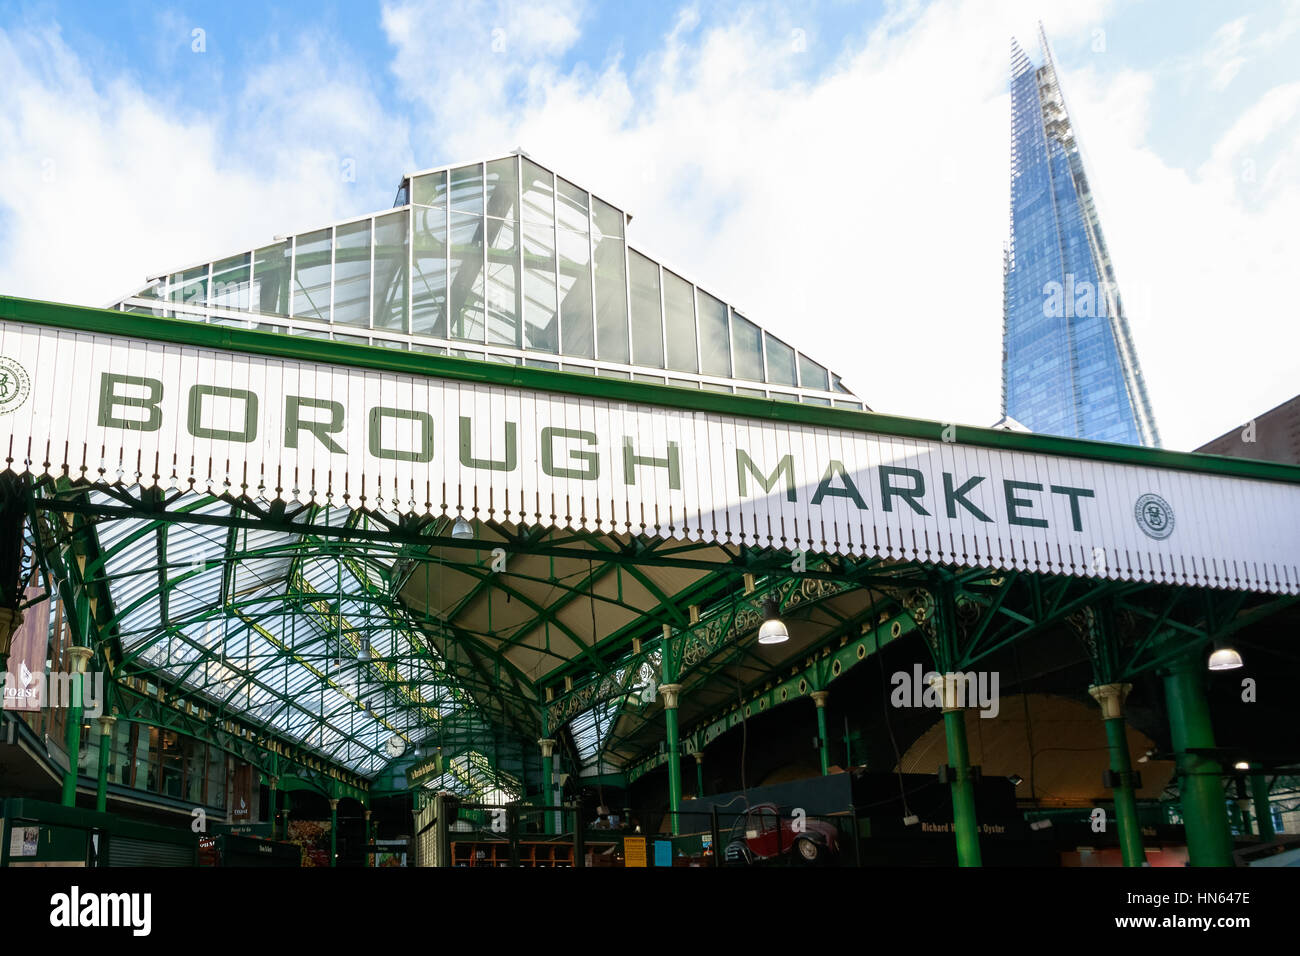 London, UK - November 7, 2016 - Borough Market with The Shard building in the background - Stock Image